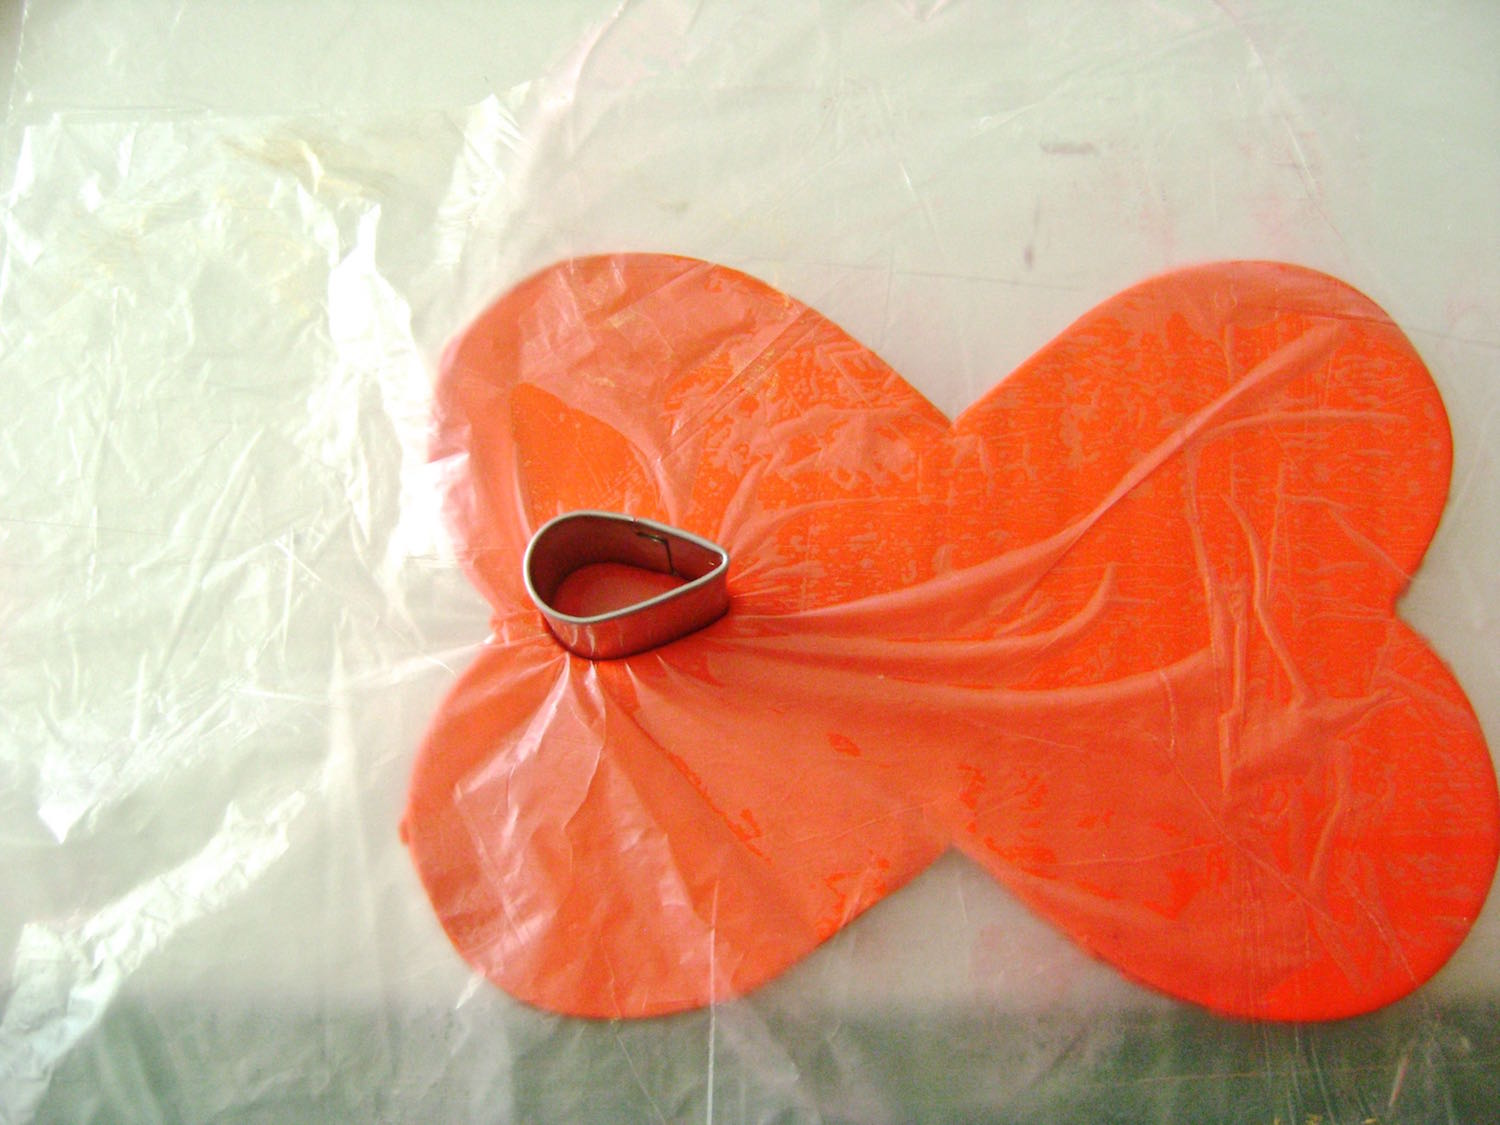 step 3 - Cover the cuff with plastic wrap. With a teardrop shaped cutter, press down to cut a hole in the clay on the left side of the cuff. Position the cutter on the right side and create an identical cut.